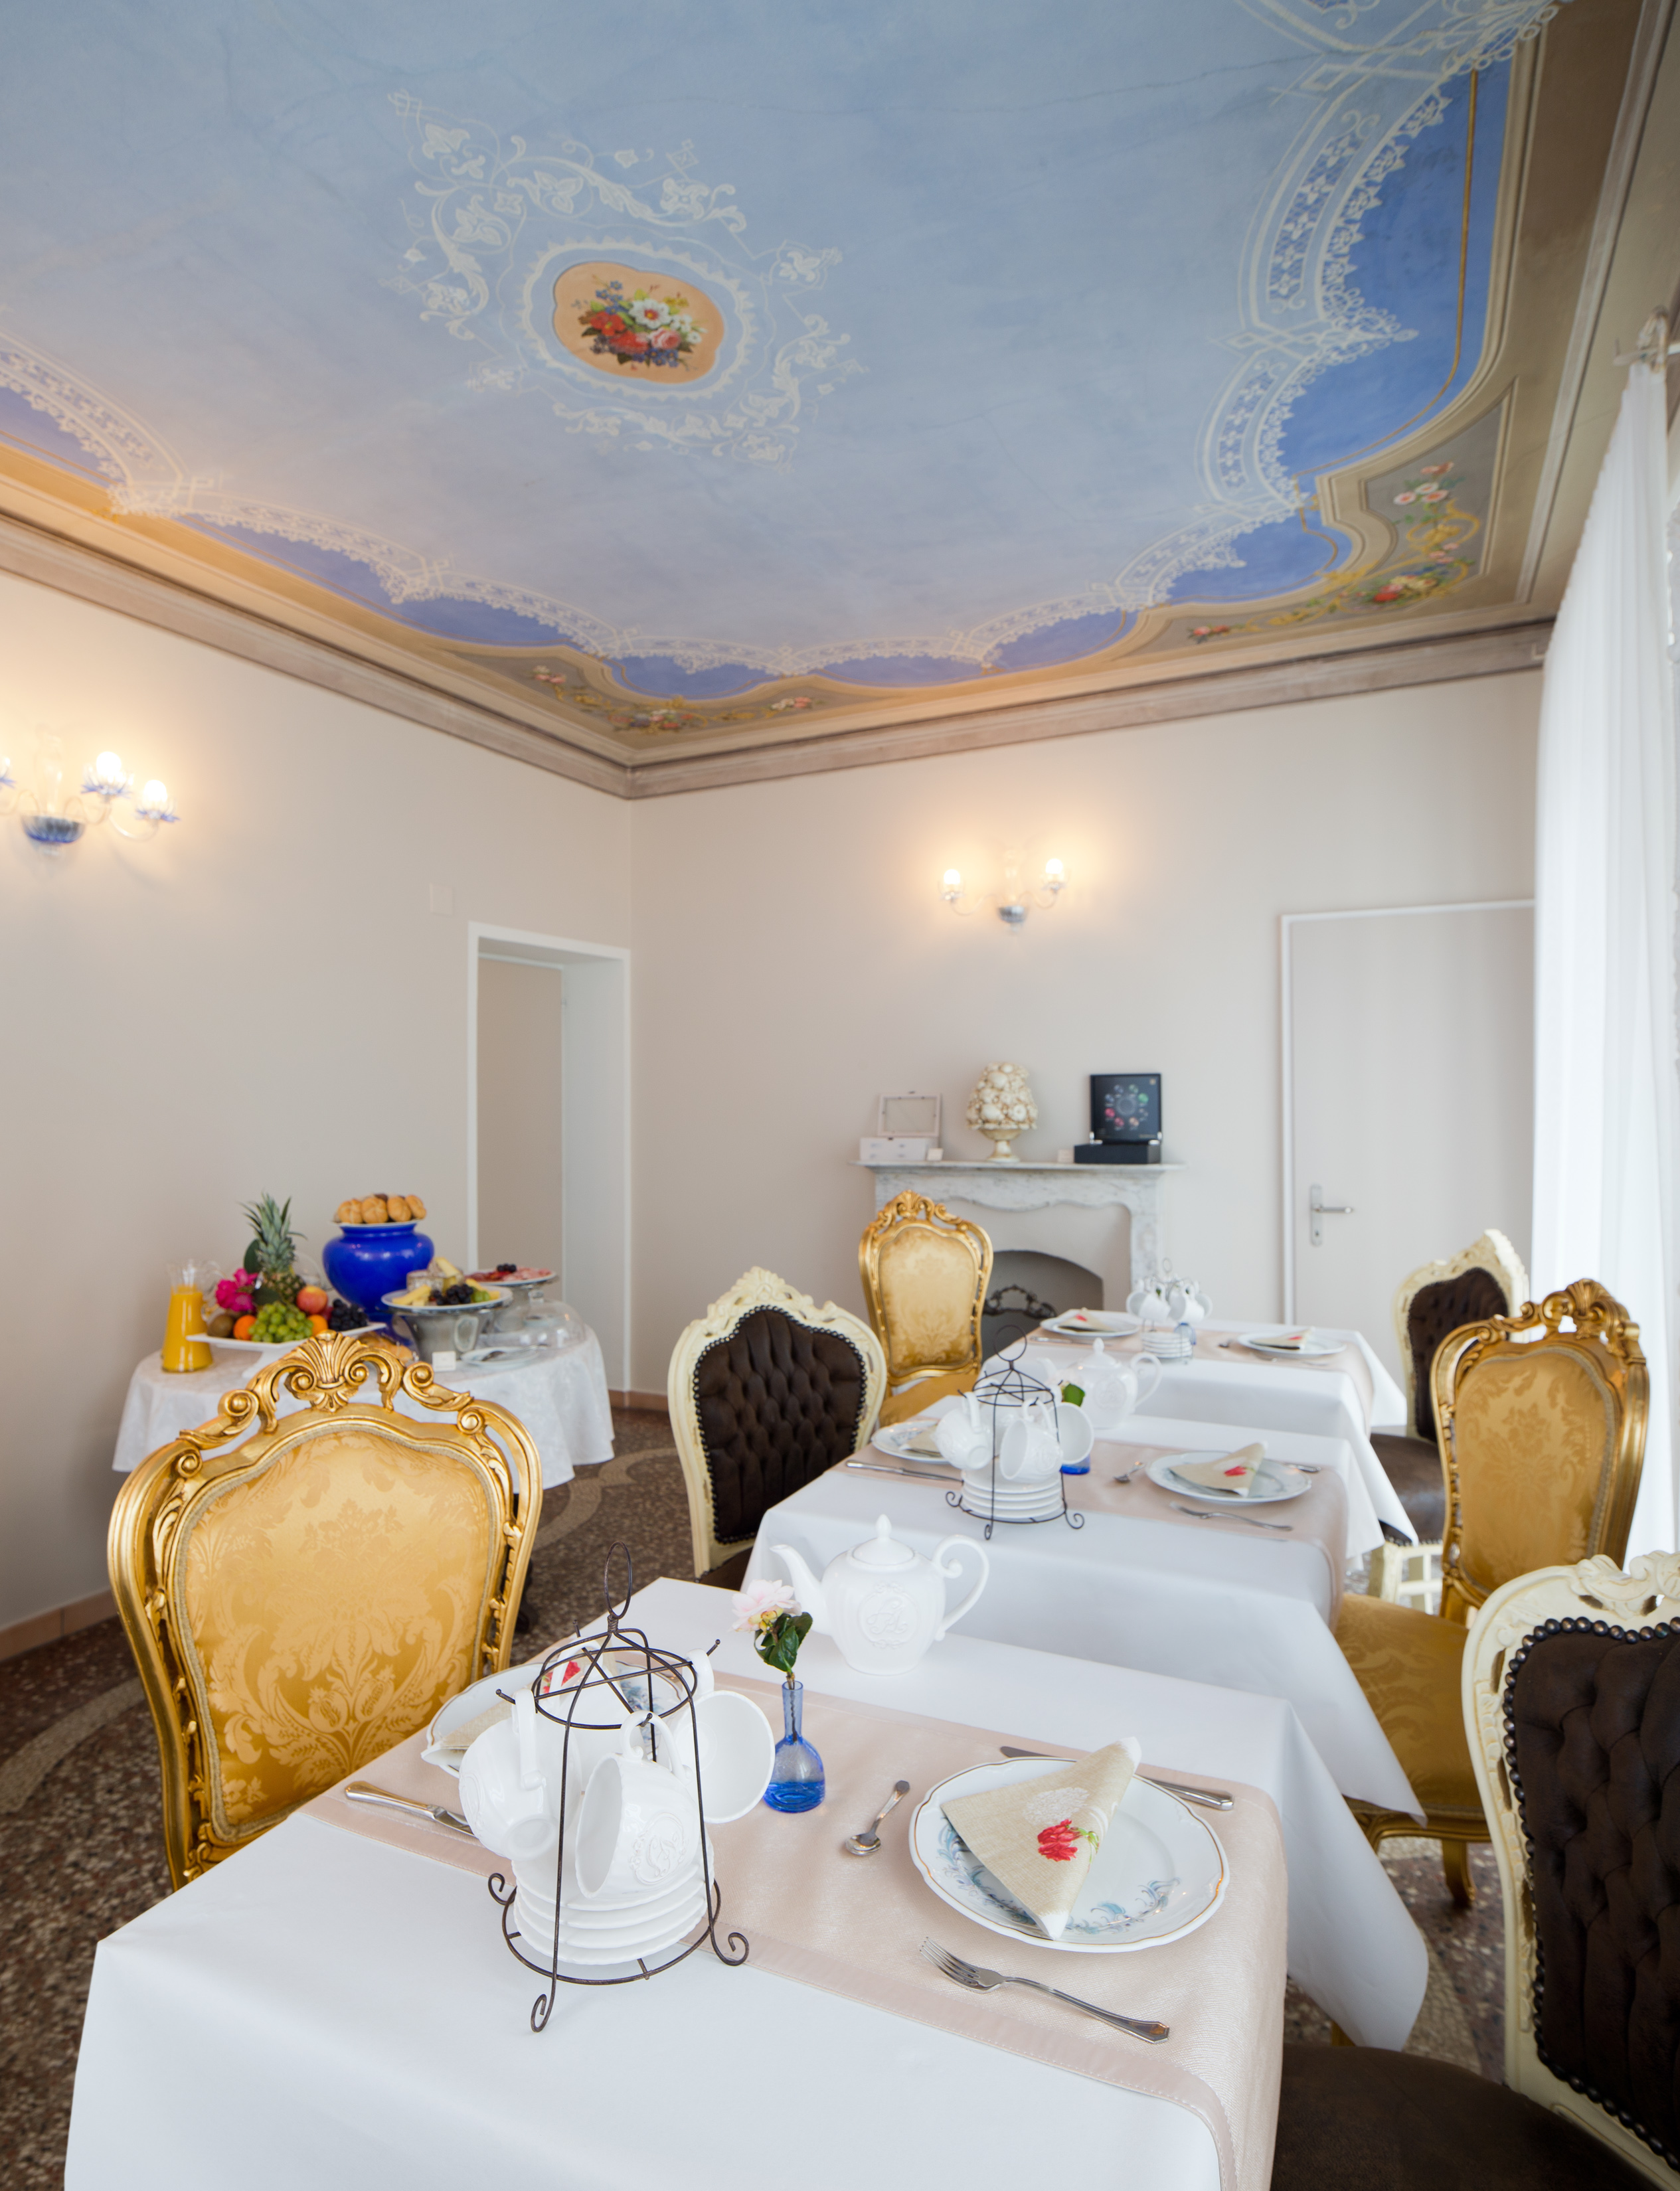 Albergo Villa Sarnia - rooms lookup 12